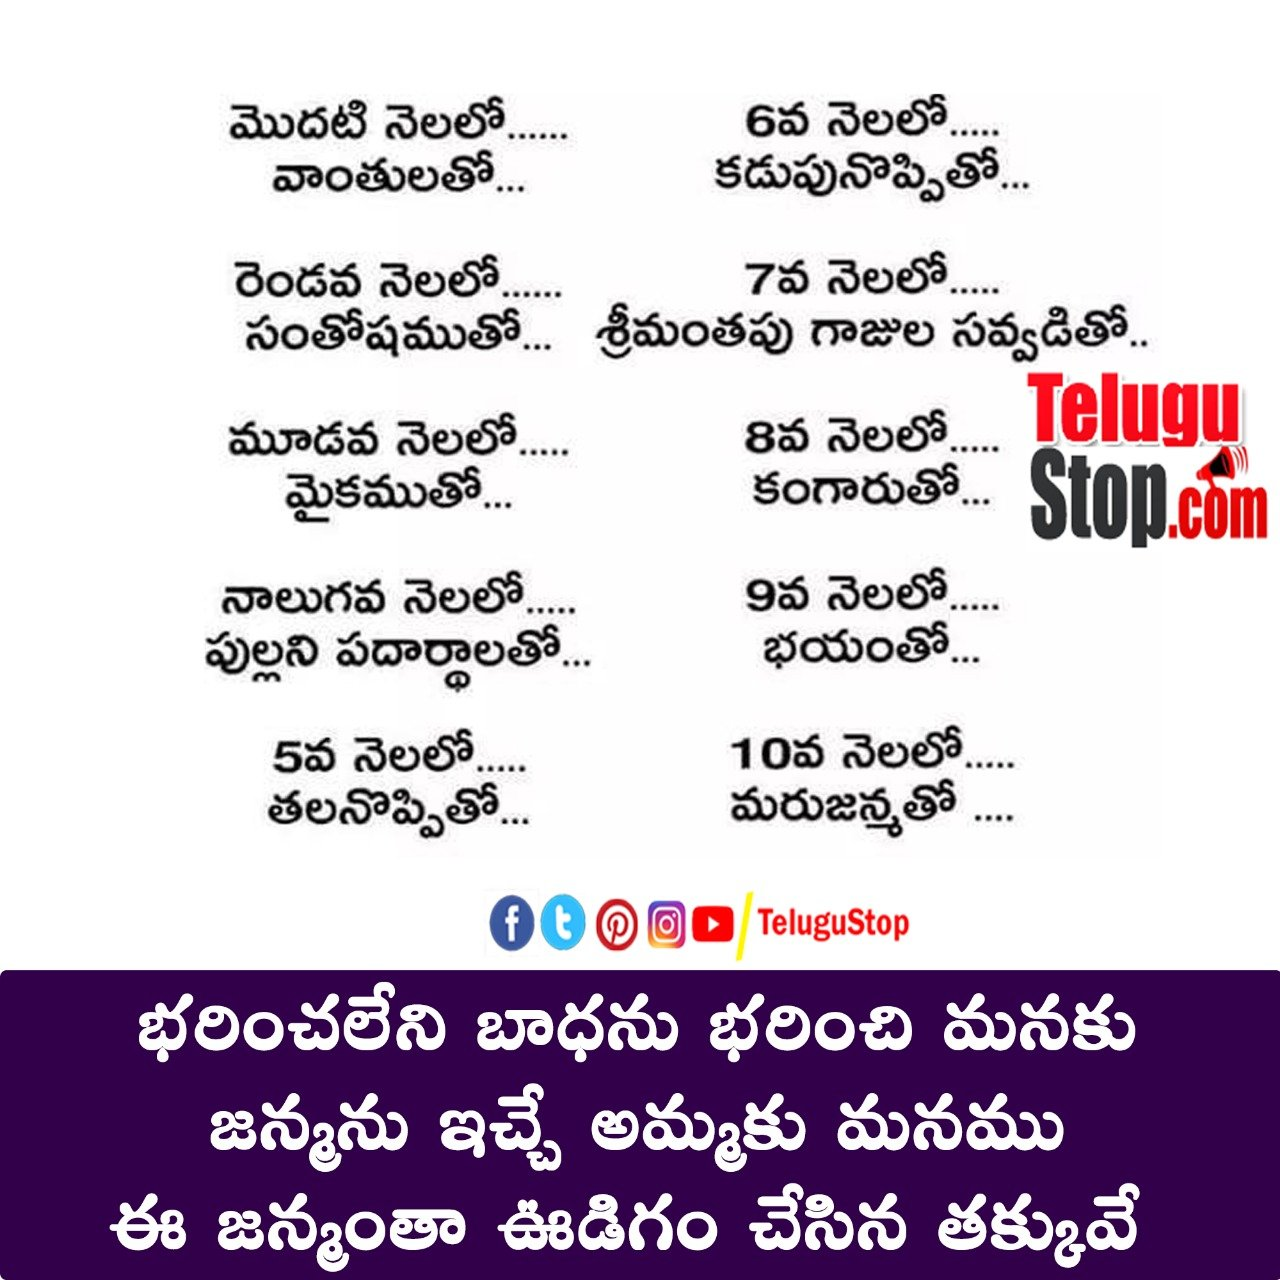 Telugu Amma Prema Telugu Inspirational Quotes, Love Or Arranged Marriage Which Is Better Inspirational Quotes, Reward Of Patience Is Good Inspirational Quotes-Telugu Daily Quotes - Inspirational/Motivational/Love/Friendship/Good Morning Quote